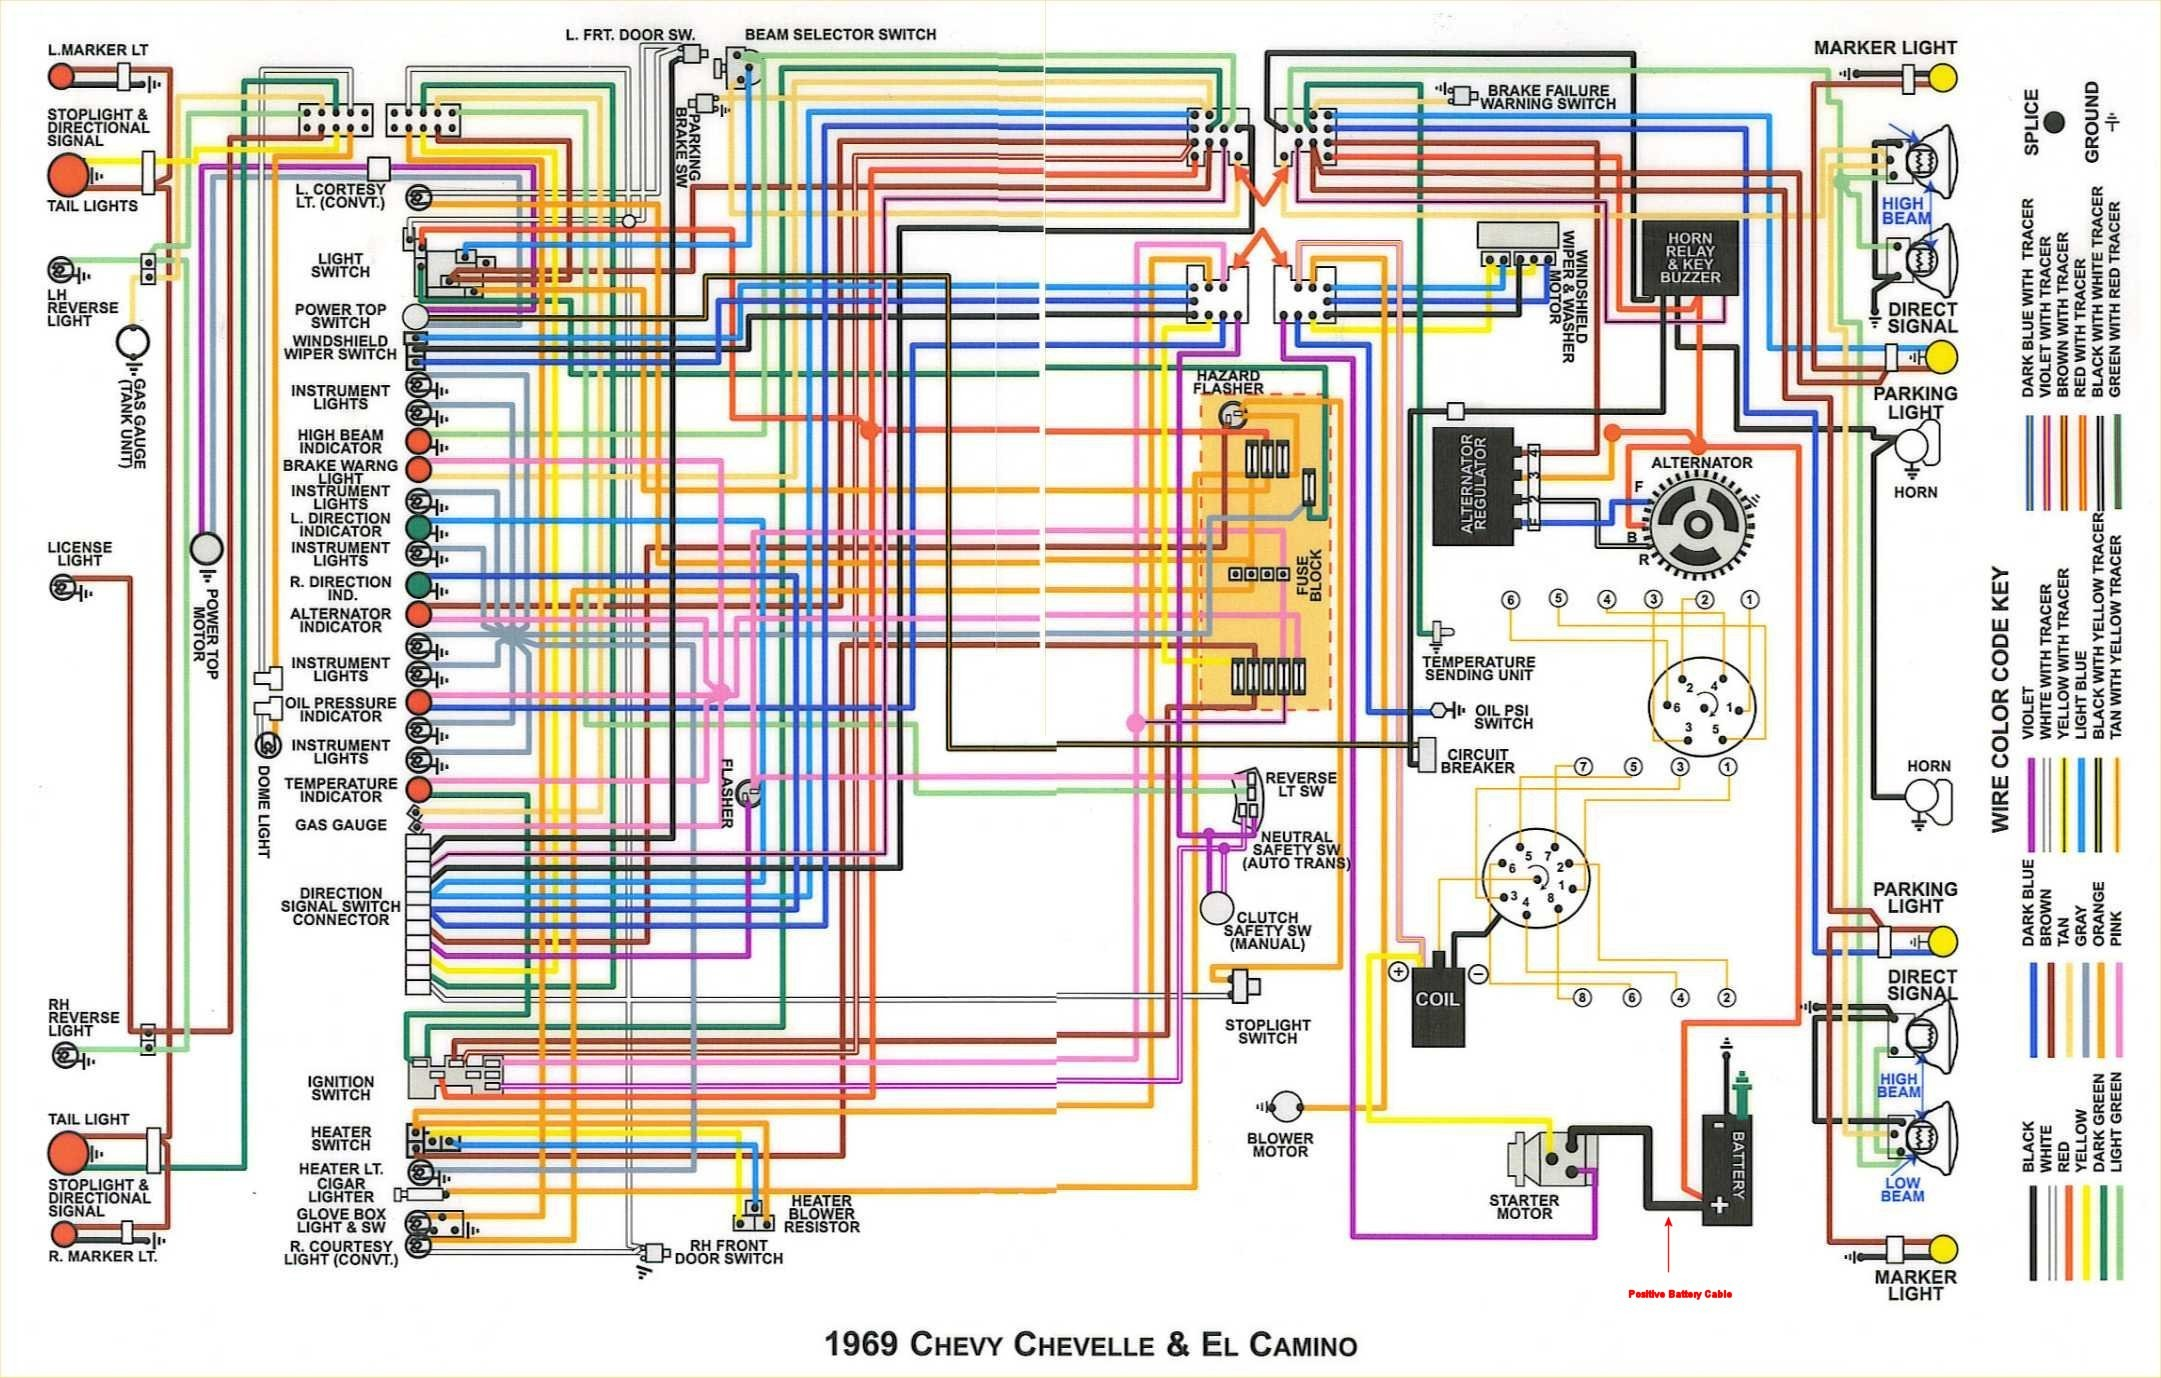 1967 Camaro Wiring Diagram Online Library Corvette Schematic 1968 Dash Harness Experts Of Rh Evilcloud Co Uk